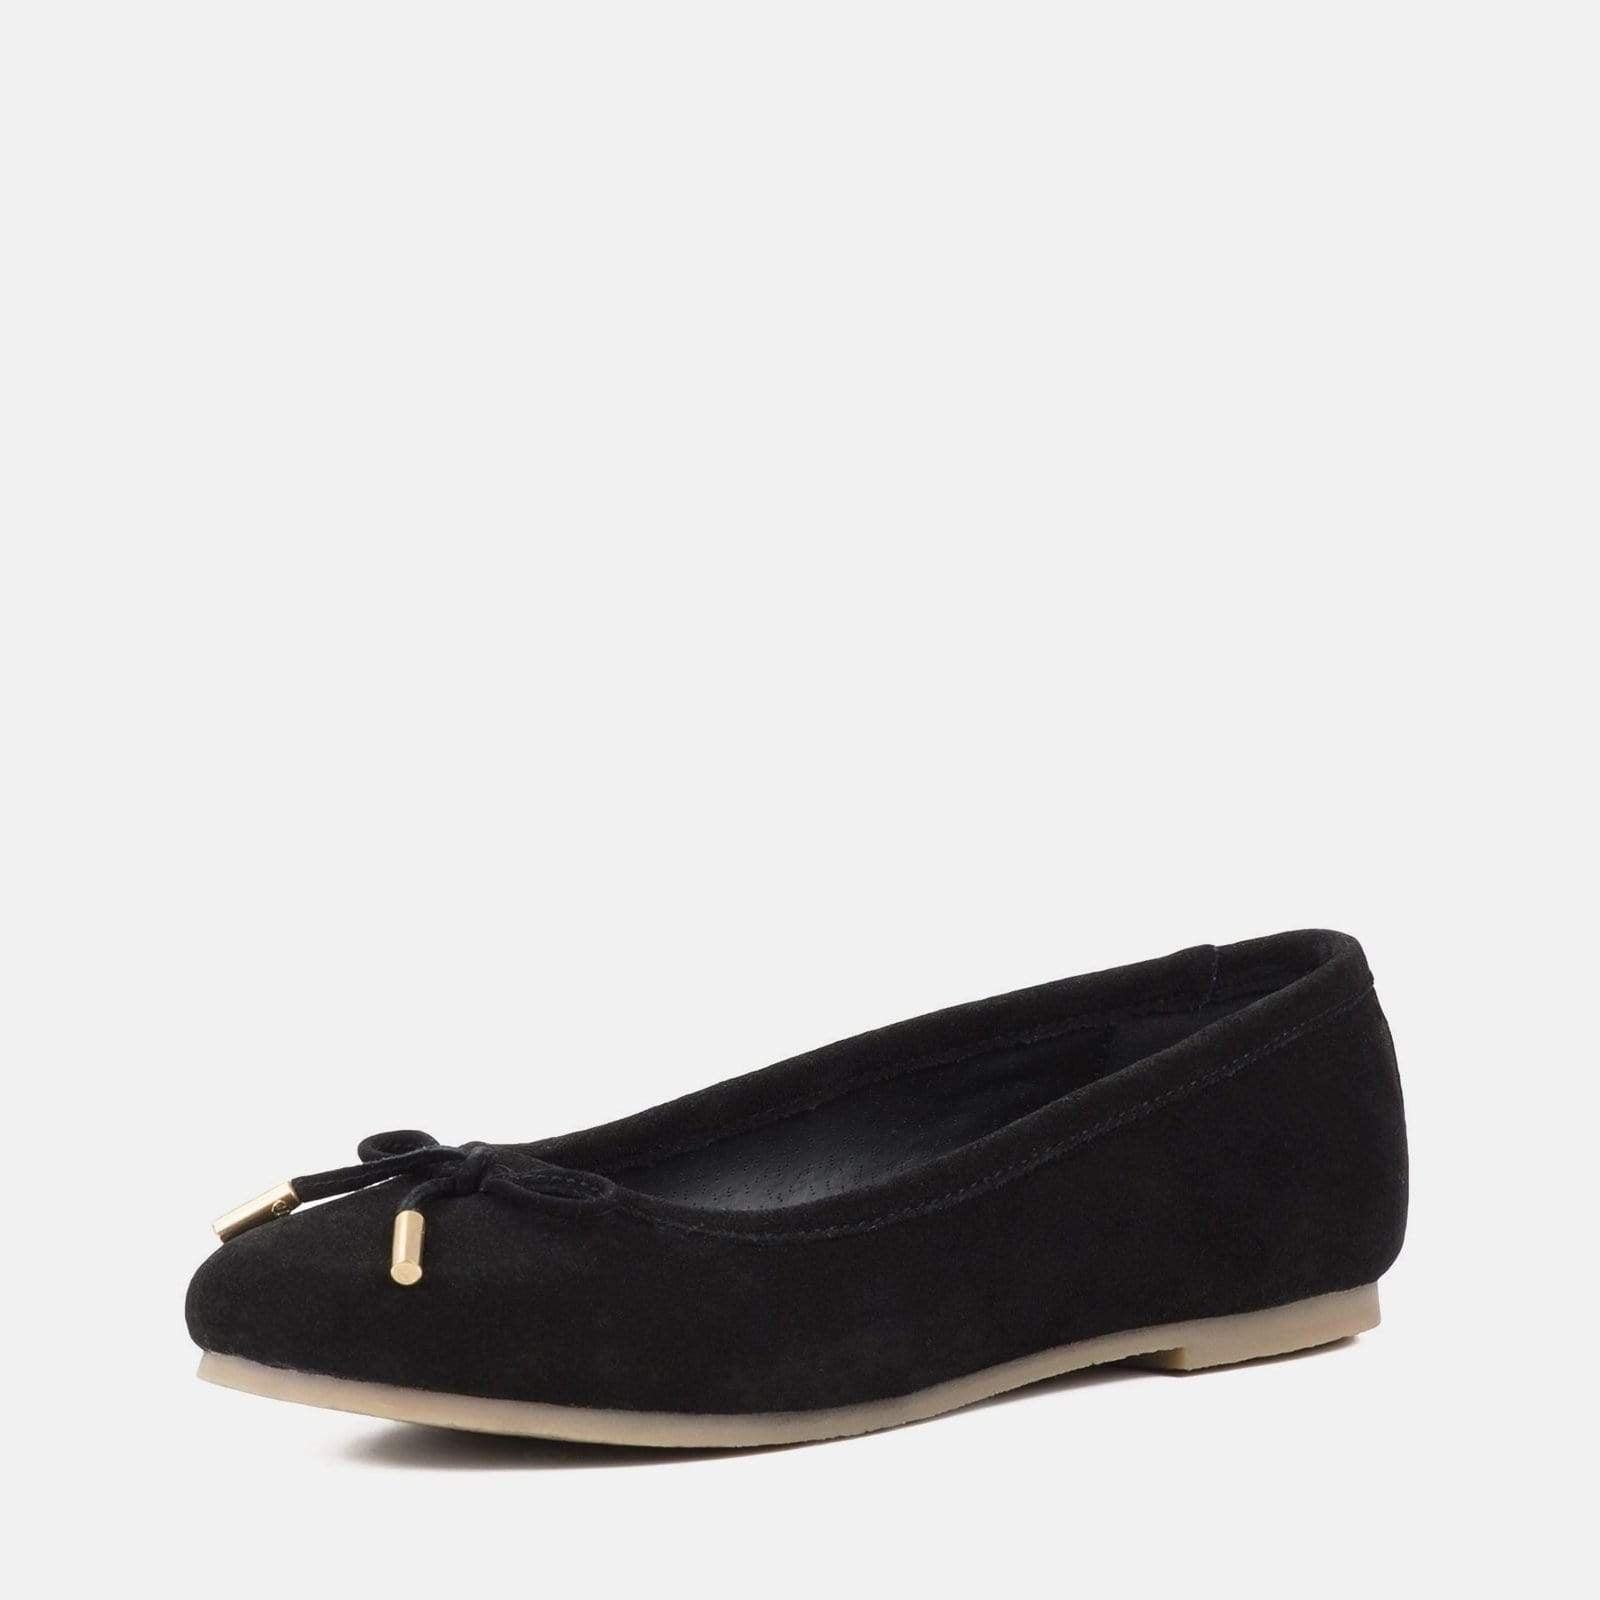 DARCEY BLACK SUEDE FLAT PUMPS